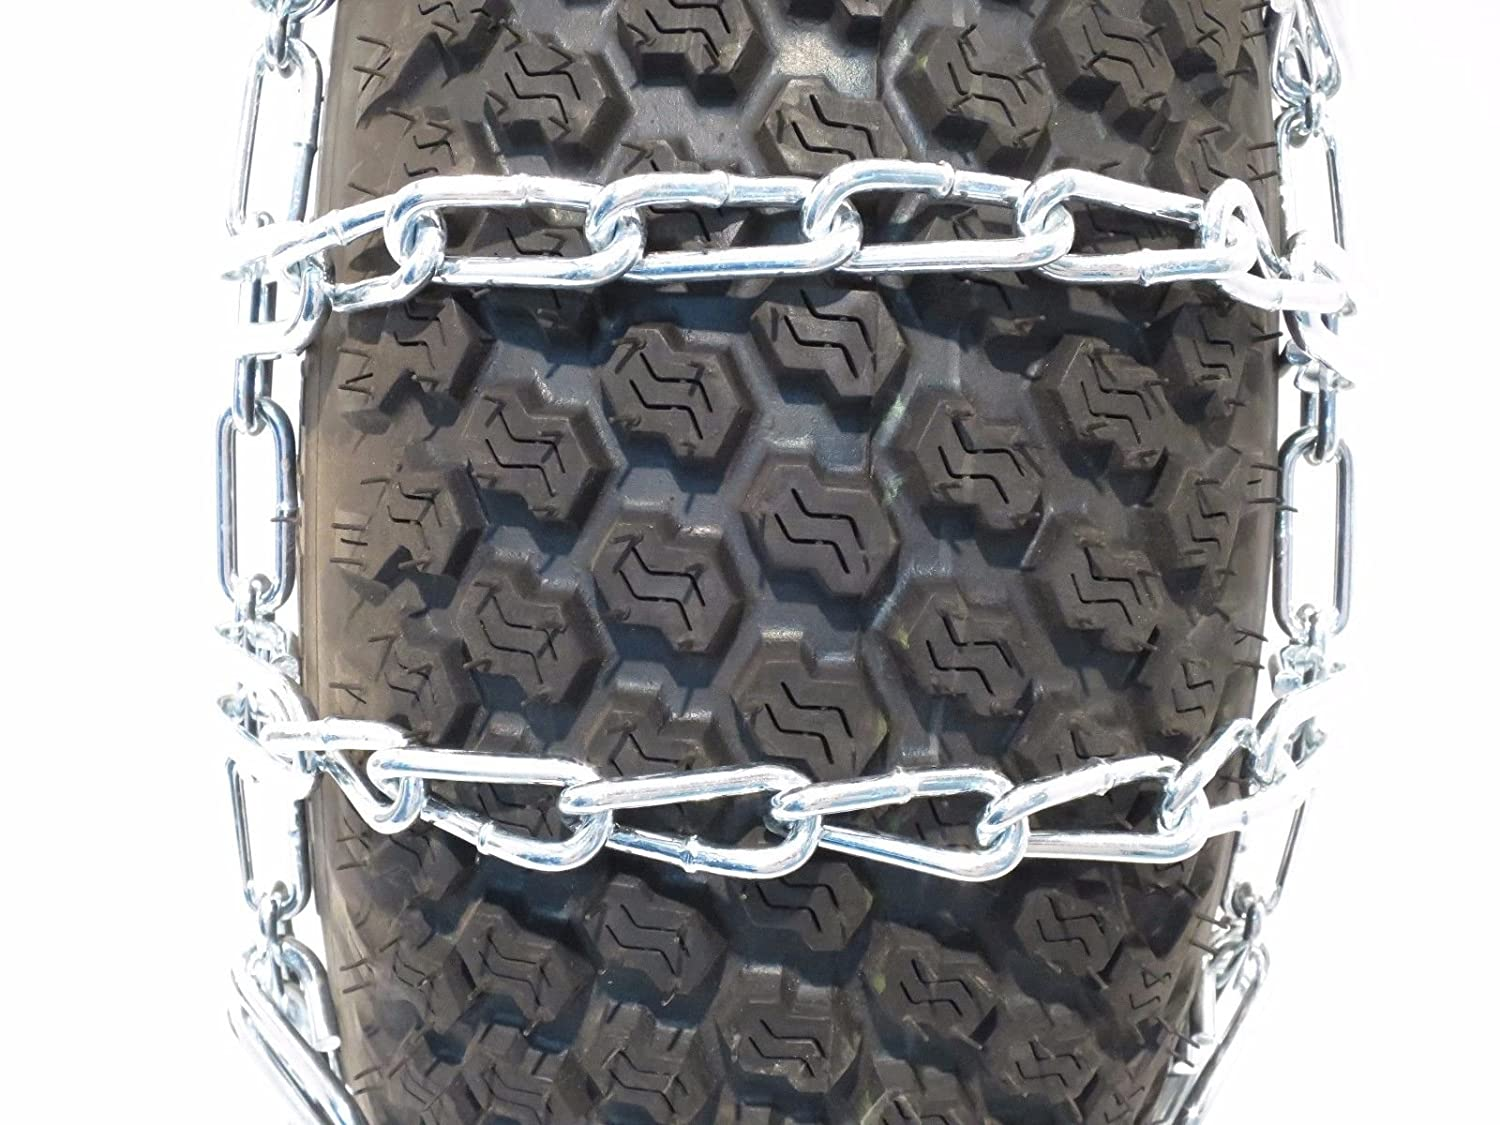 The ROP Shop New Pair 2 Link TIRE Chains 18x8.5x10 fits Many Honda MUV Pioneer UTV Vehicle 5558999420